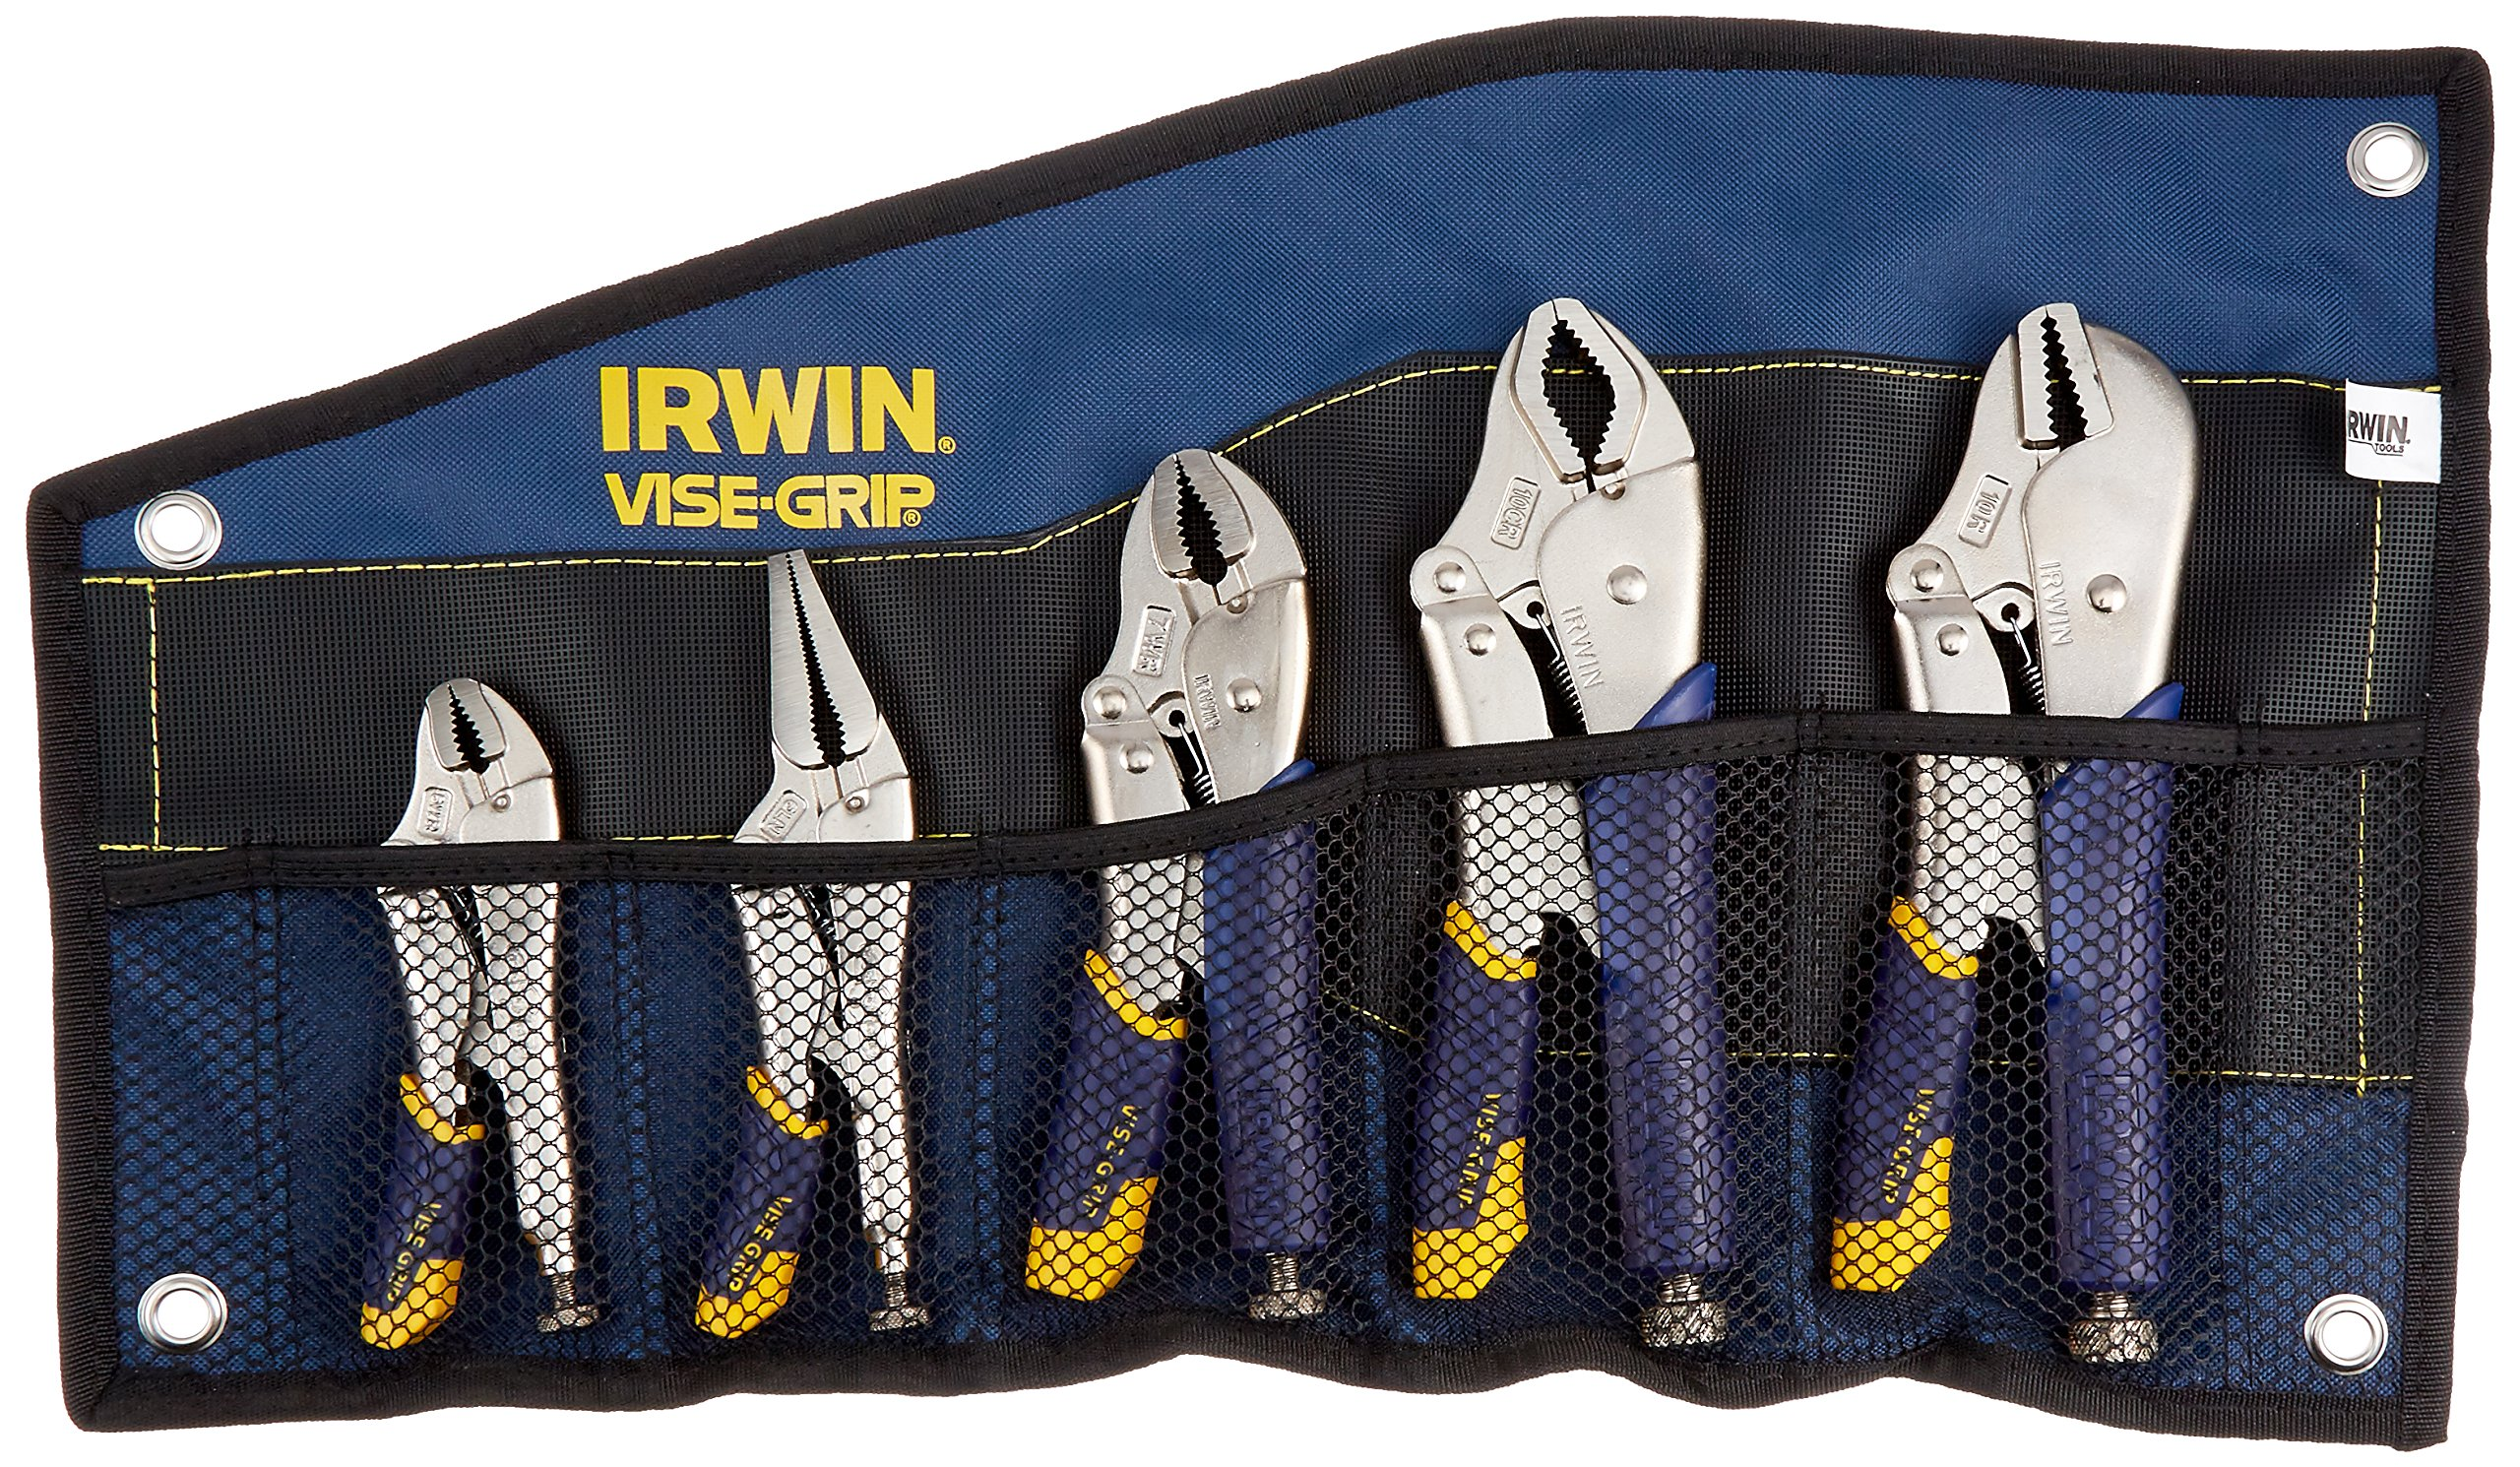 IRWIN Tools VISE-GRIP Locking Pliers Set, Fast Release, 5-Piece (538KBT) by IRWIN